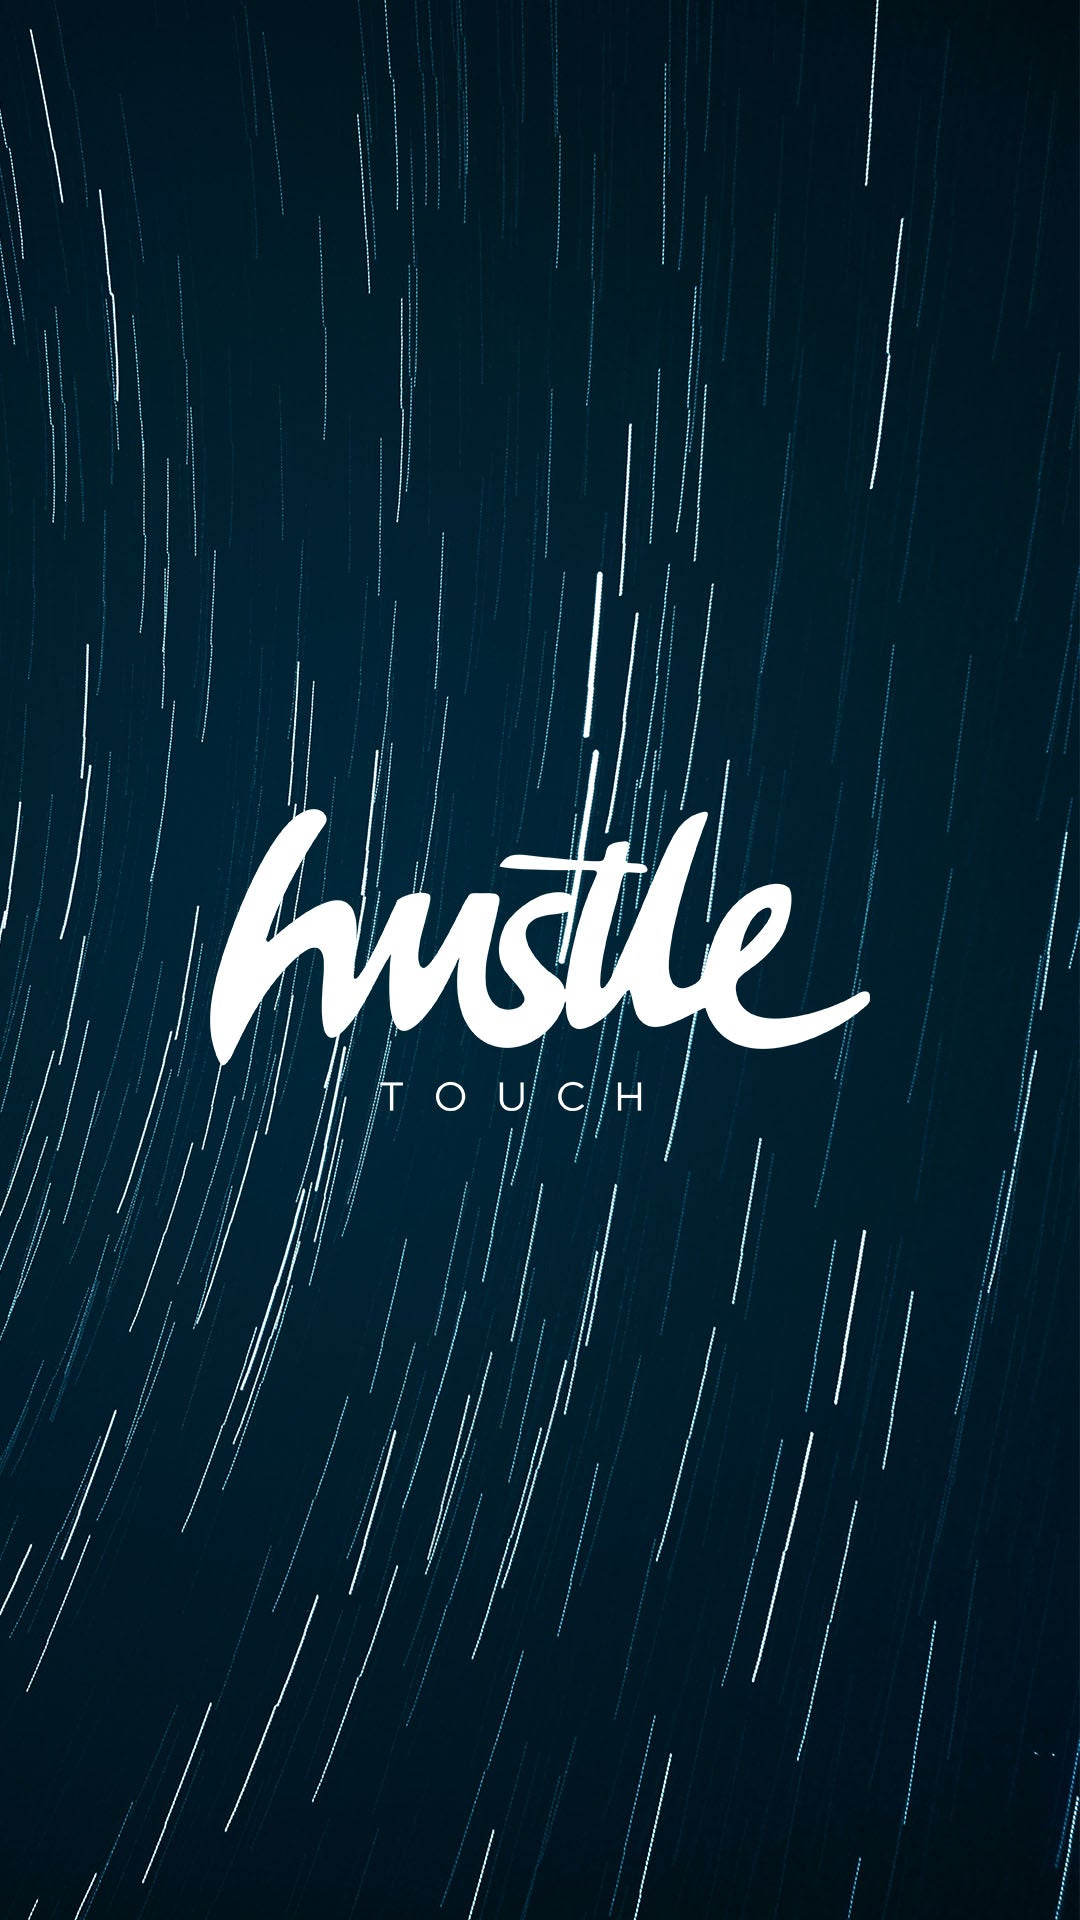 Phone Hustle Touch Wallpaper 017